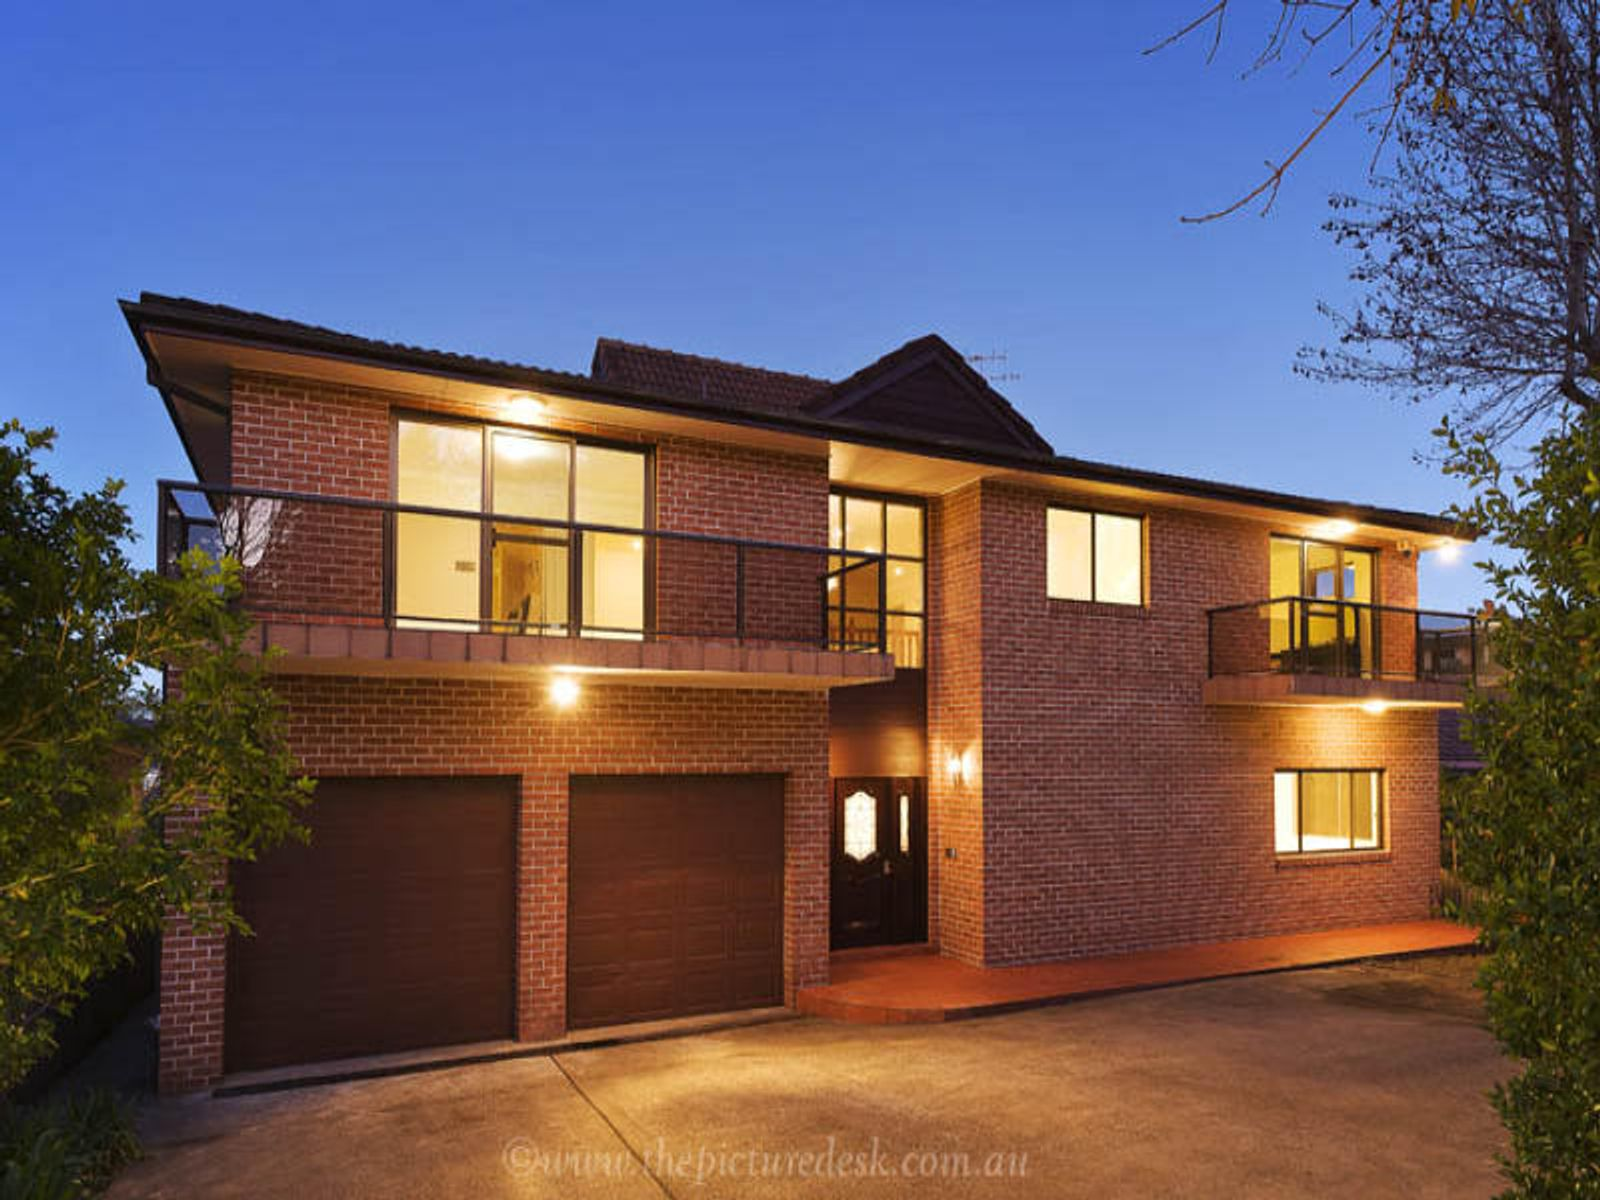 27 Memorial Avenue, St Ives, NSW 2075